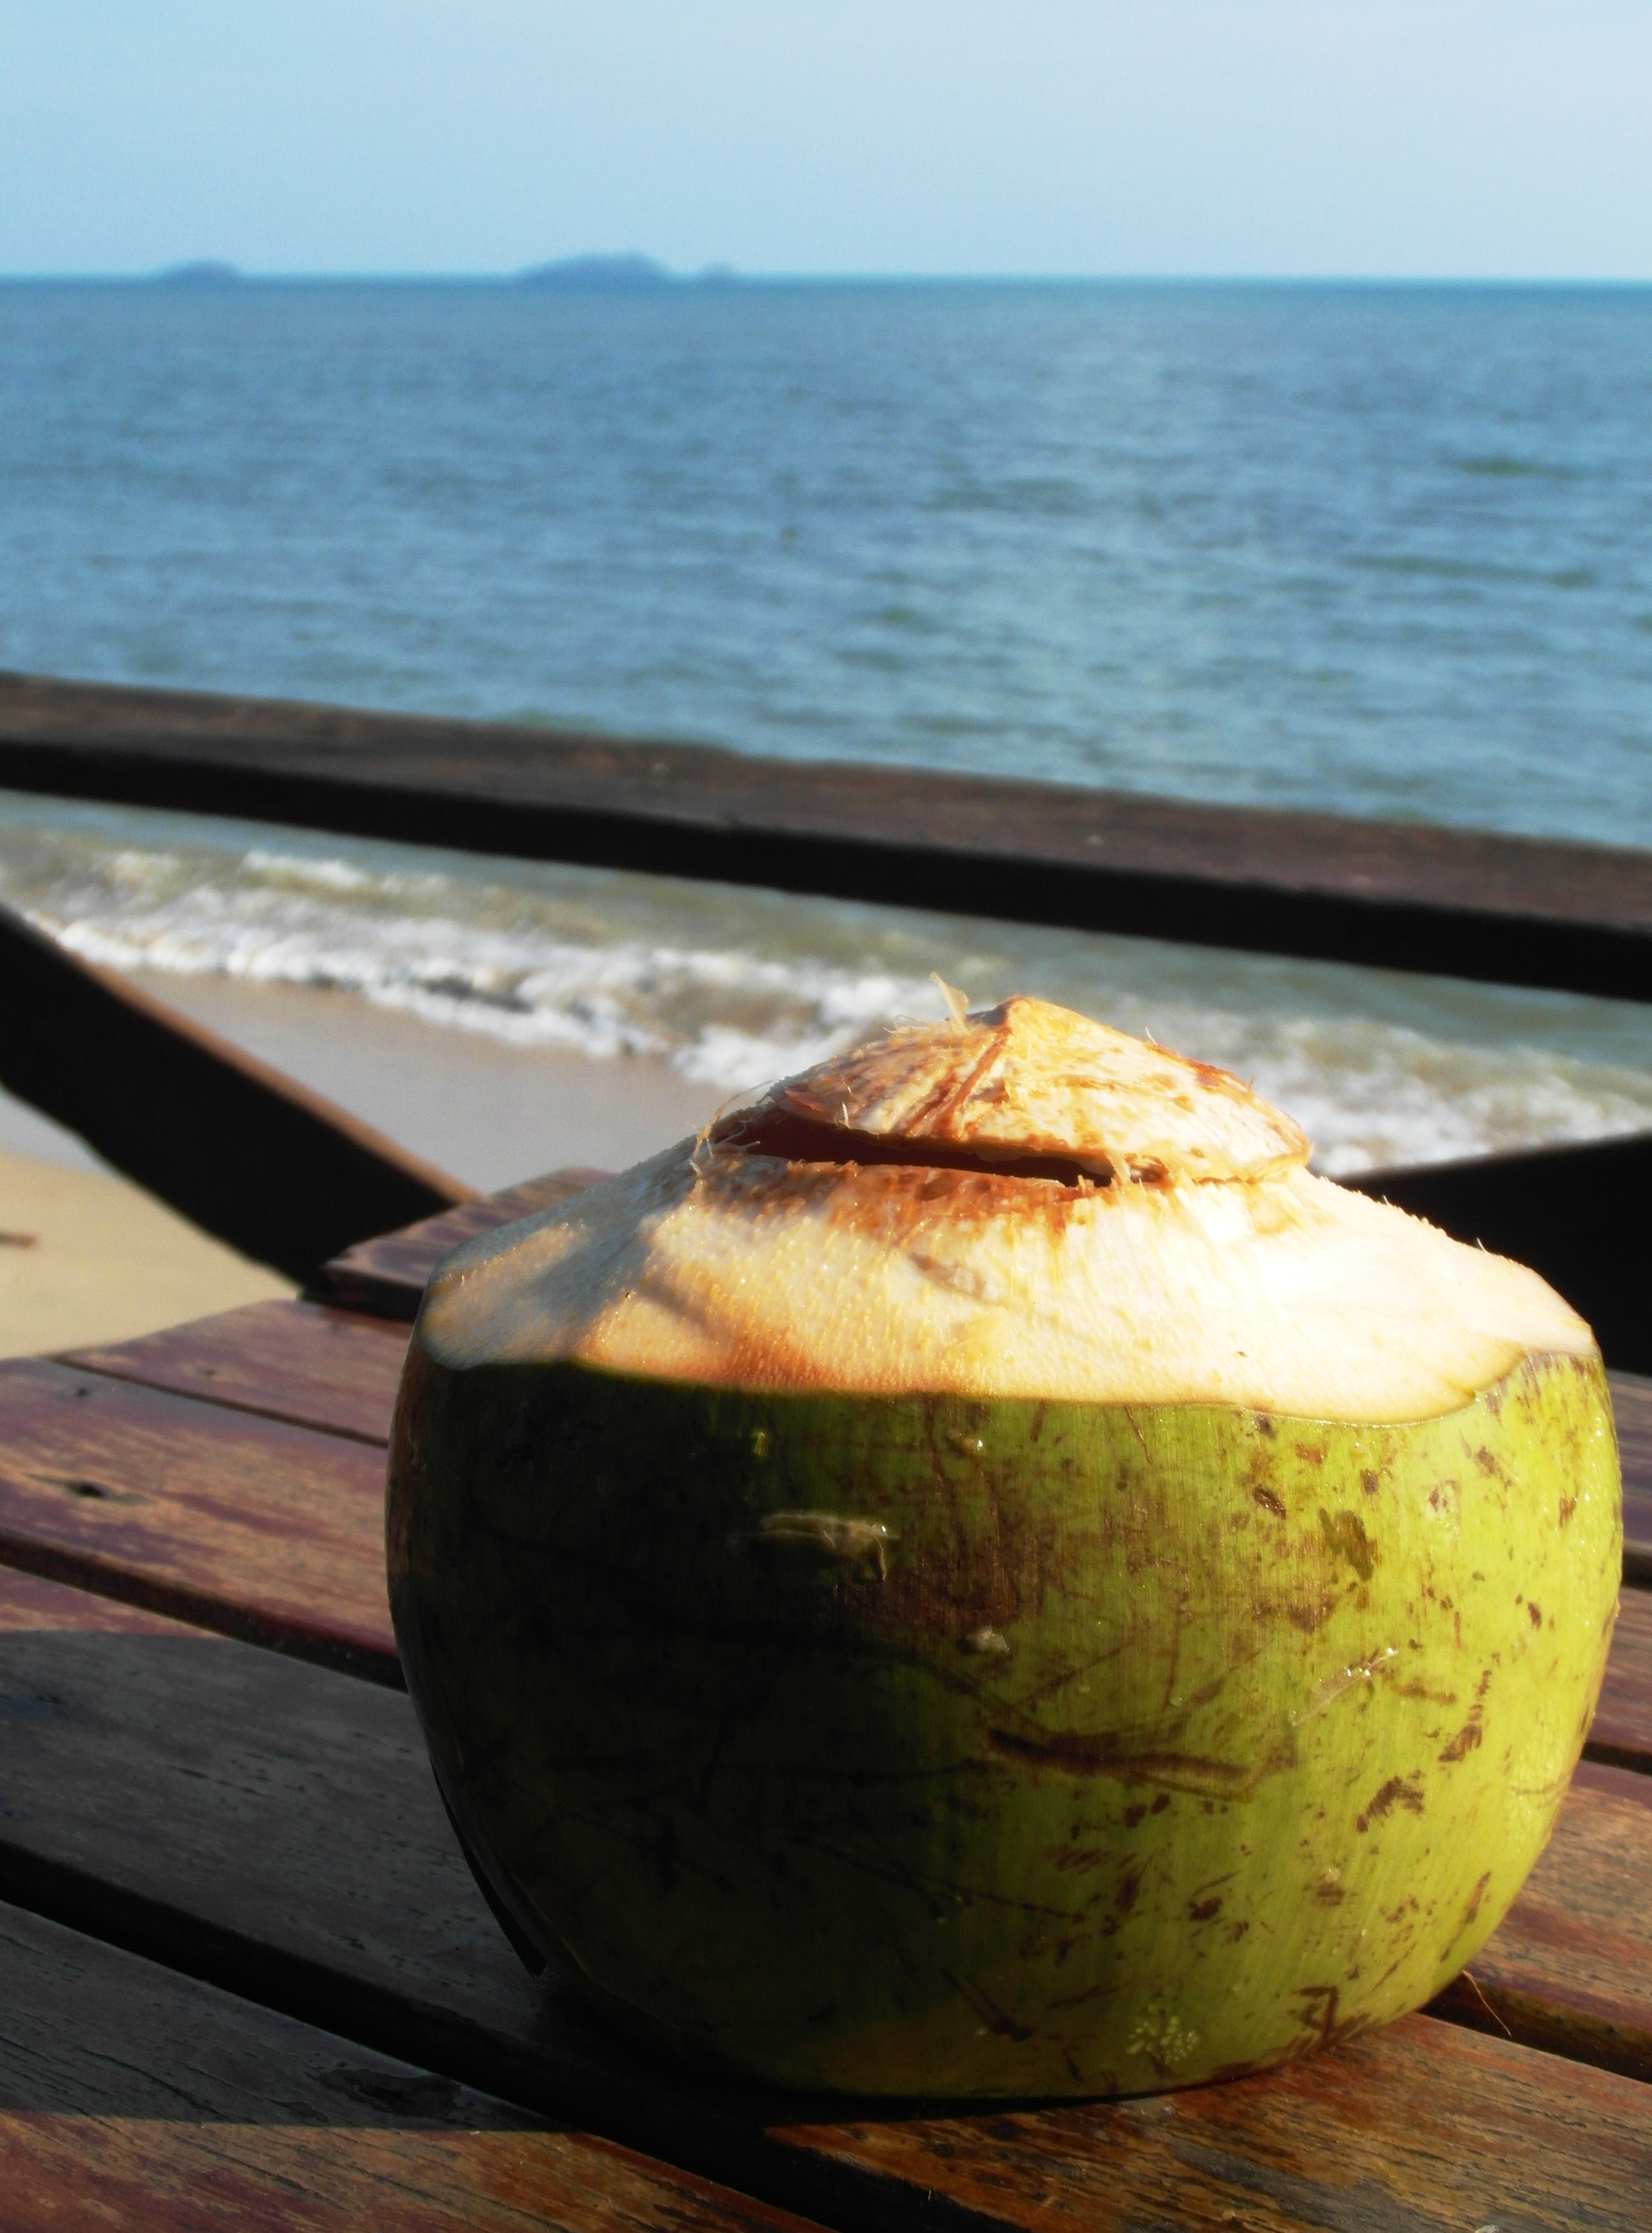 Fresh coconut drink by the ocean photo